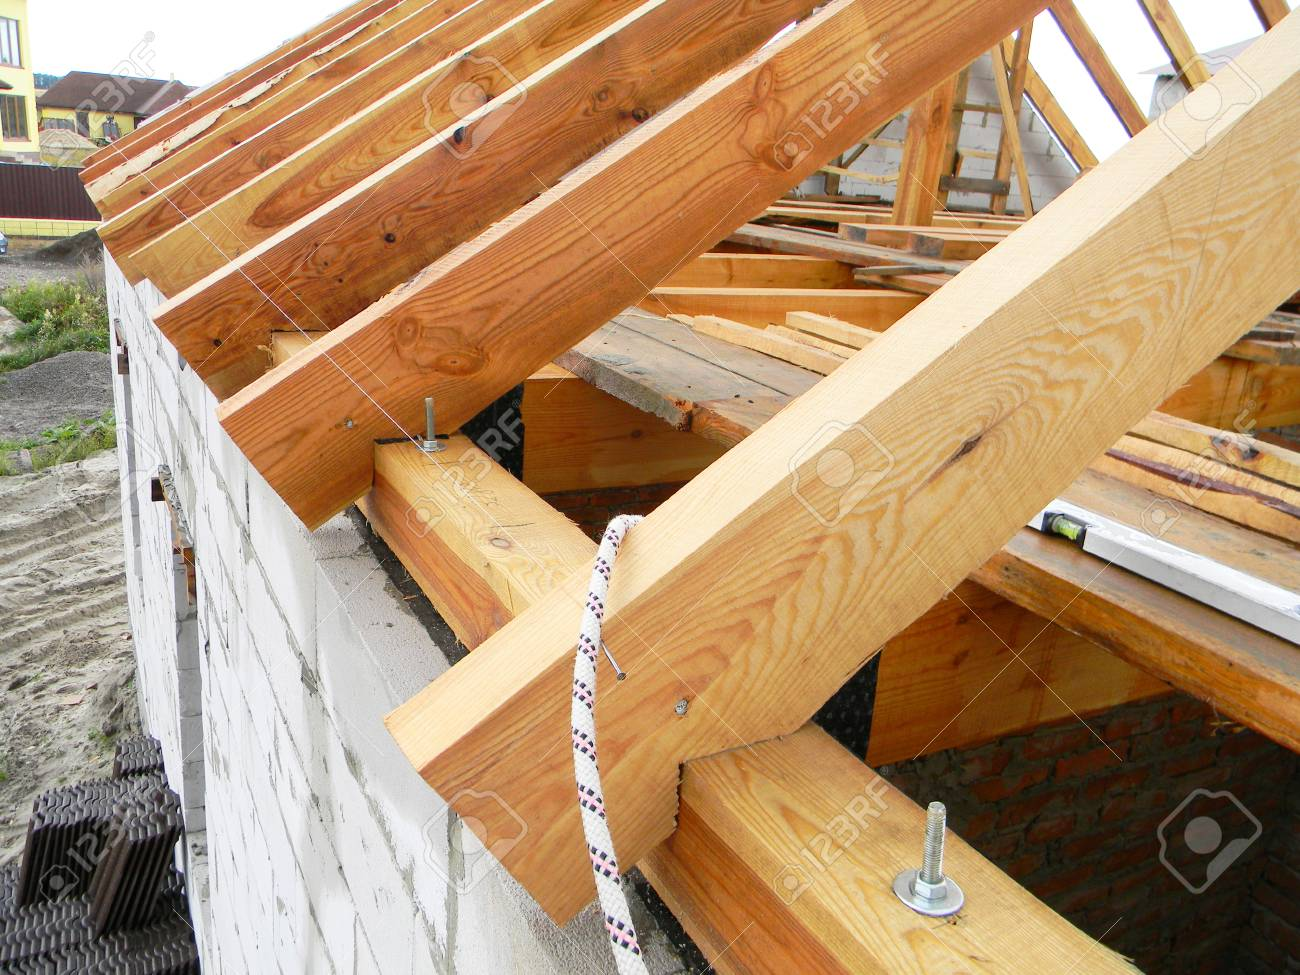 Roofing Construction With Wooden Beams Logs Rafters Trusses